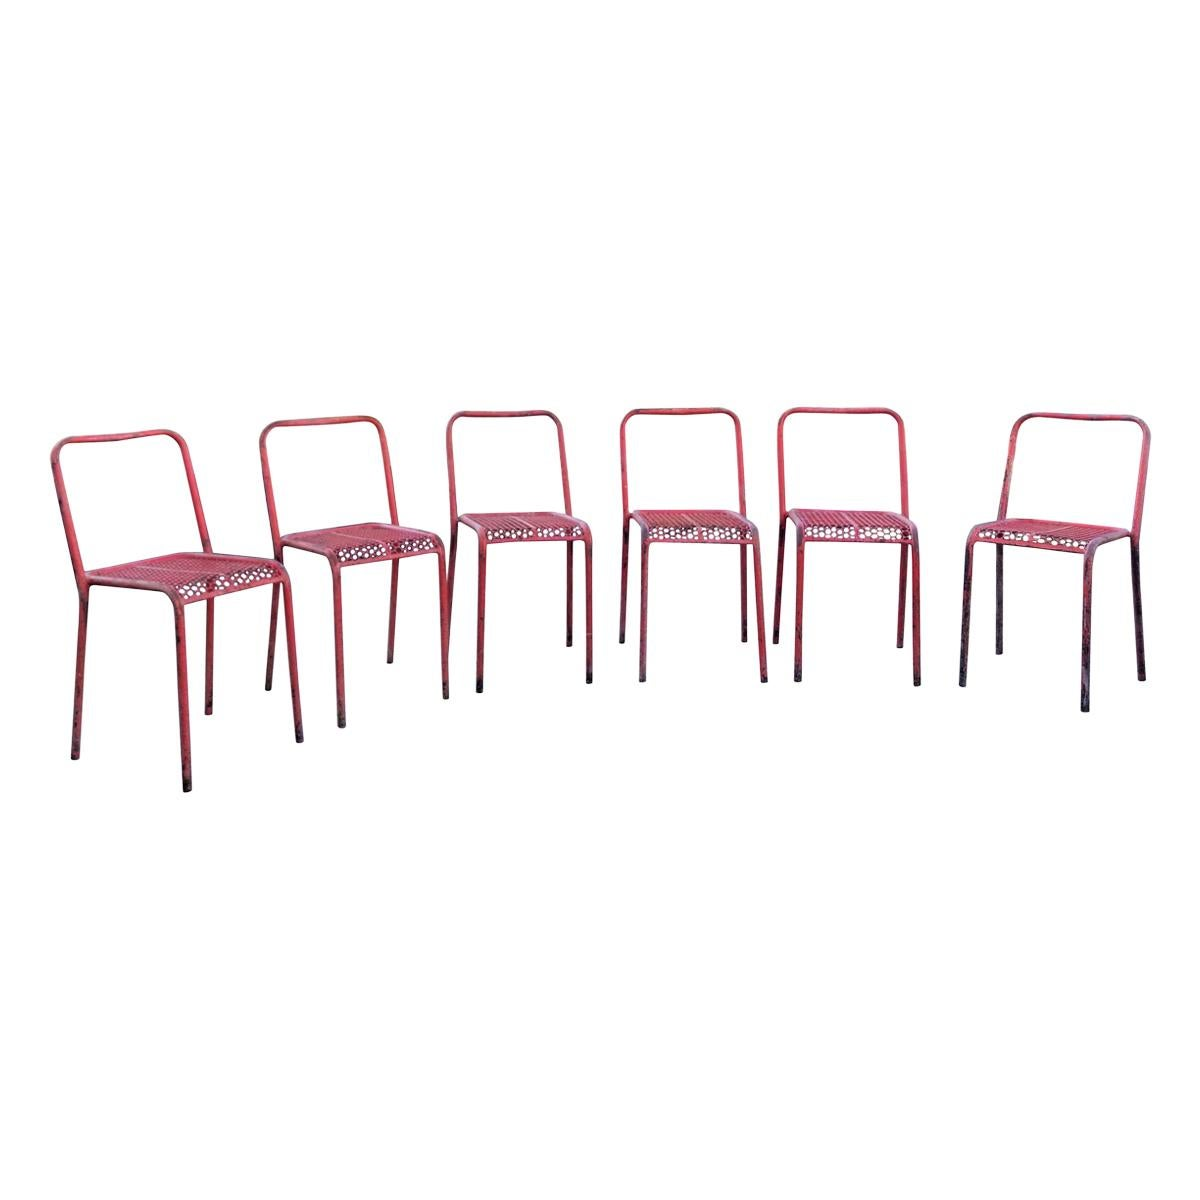 Rare Set of 6 Red René Malaval Post War Brutalist Chairs, France, 1940s